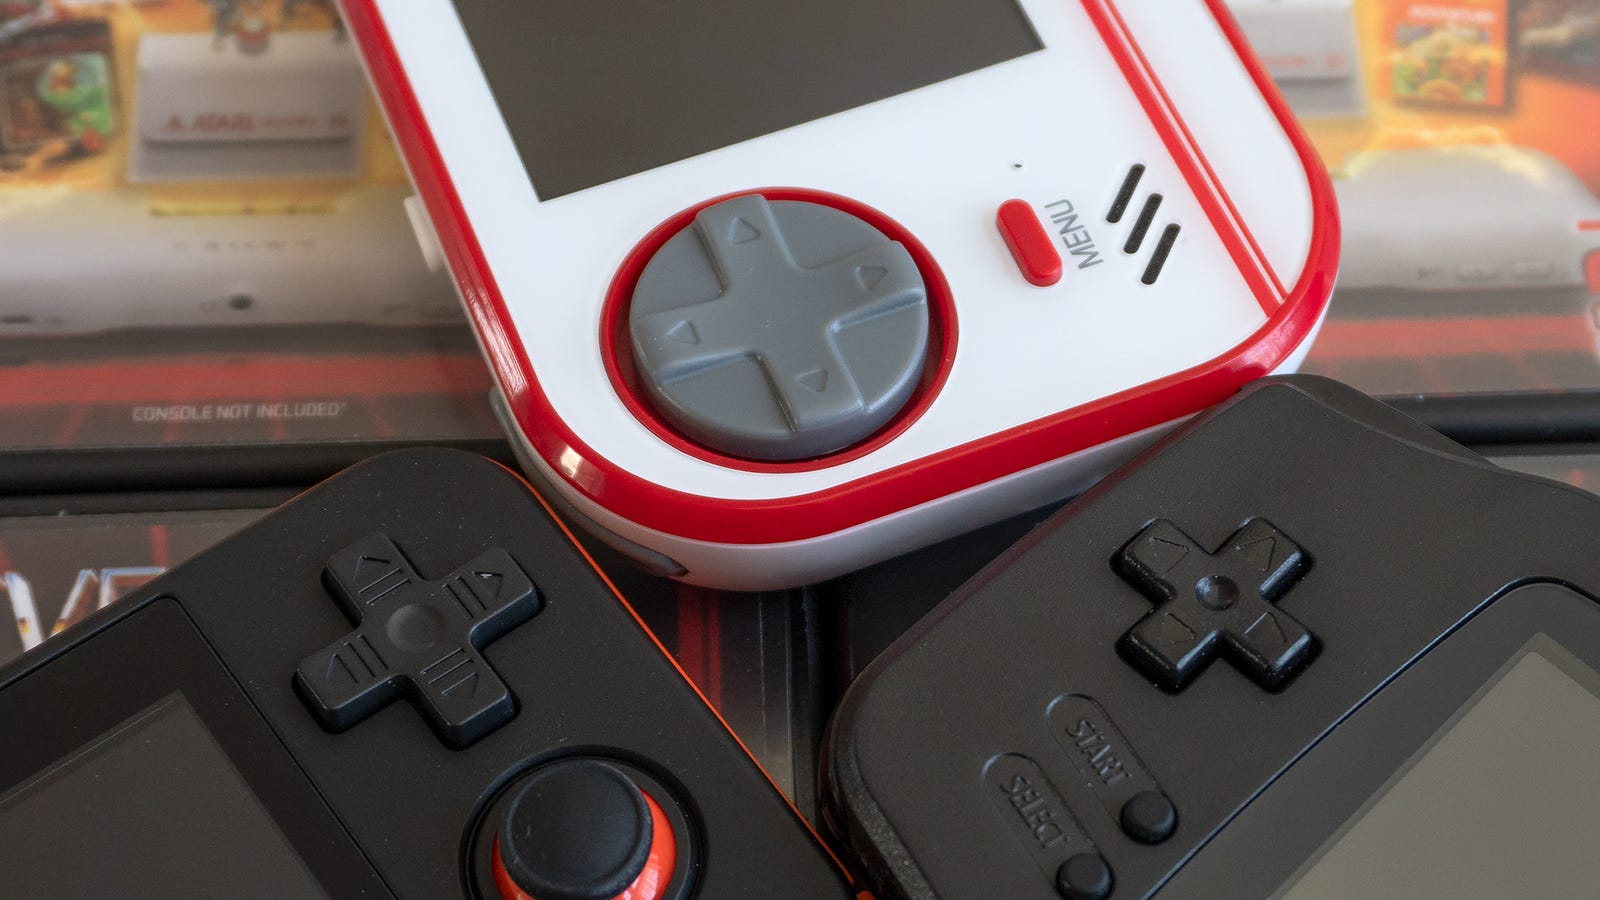 The circular directional pad on the Evercade is reminiscent of Sega's old gamepads and controllers, and it much larger than the D-pad you'll find on the RG350 and GBA.